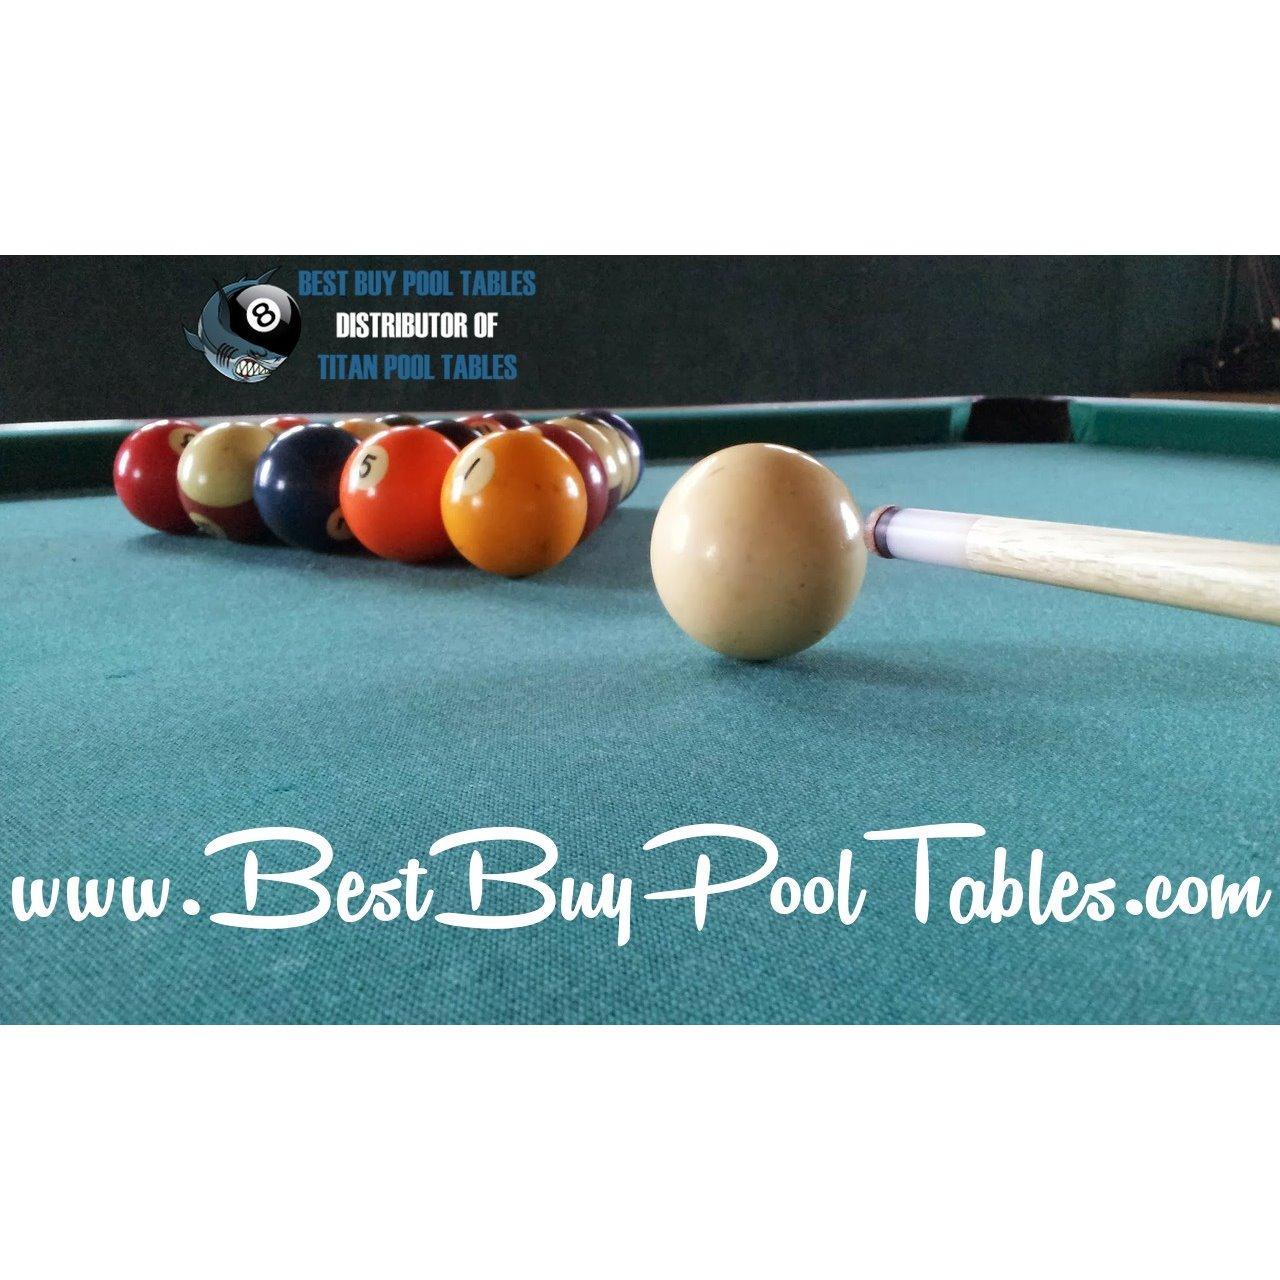 Best Buy Pool Tables